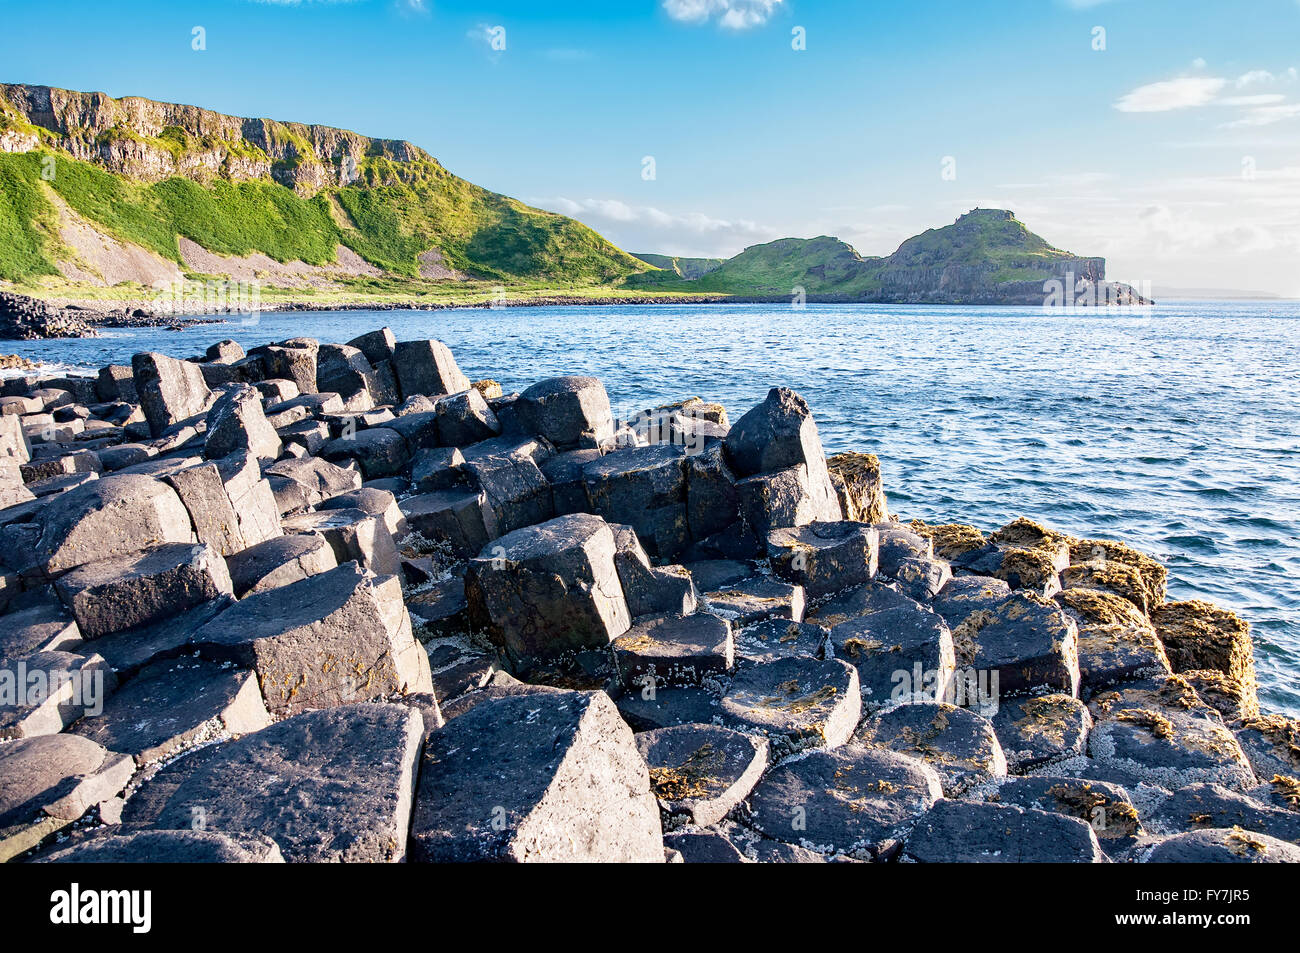 Giants Causeway, unique geological hexagonal formation of volcanic basalt rocks and cliffs in Antrim County, Northern - Stock Image